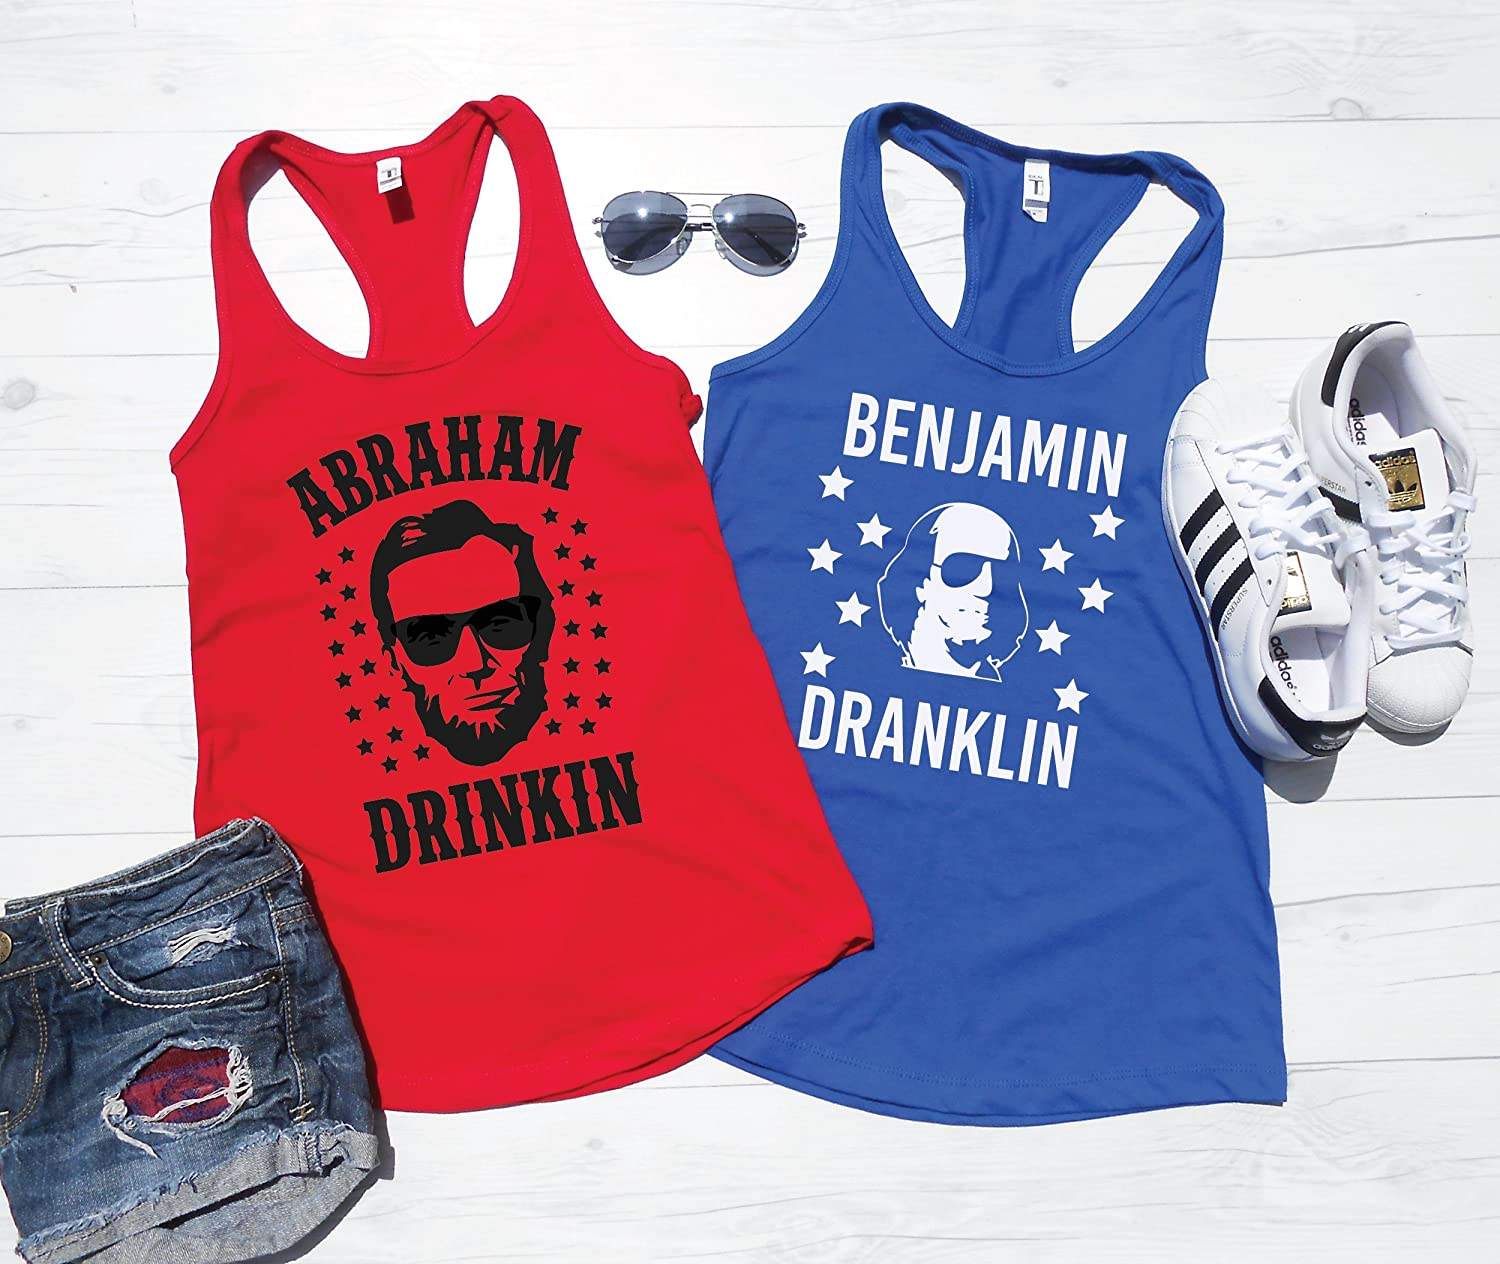 1e0a8f0429d263 Top 10 wholesale Best Merica Shirts - Chinabrands.com